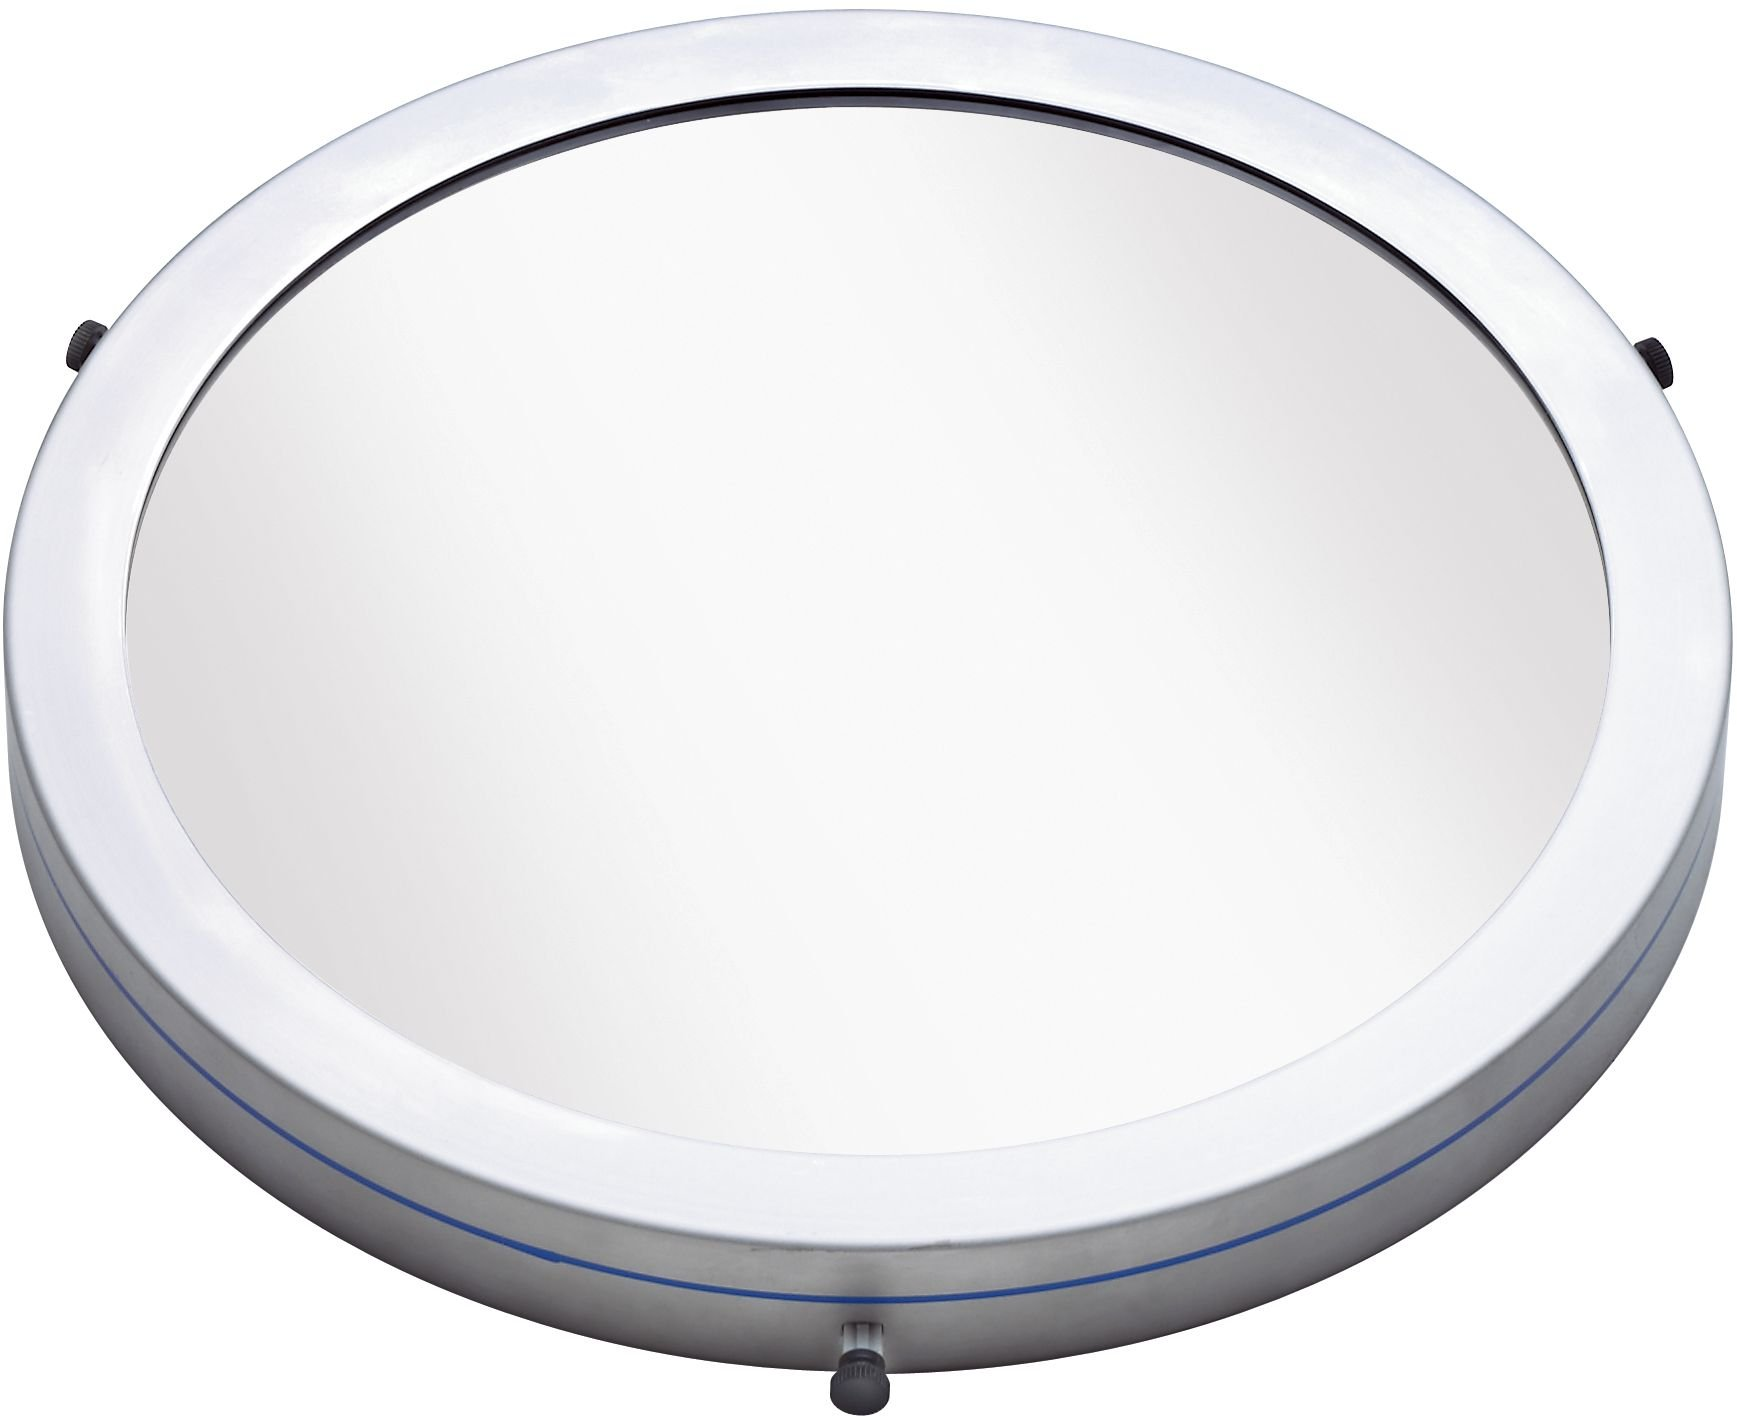 Orion 7745 3.68-Inch ID Full Aperture Solar Filter by Orion